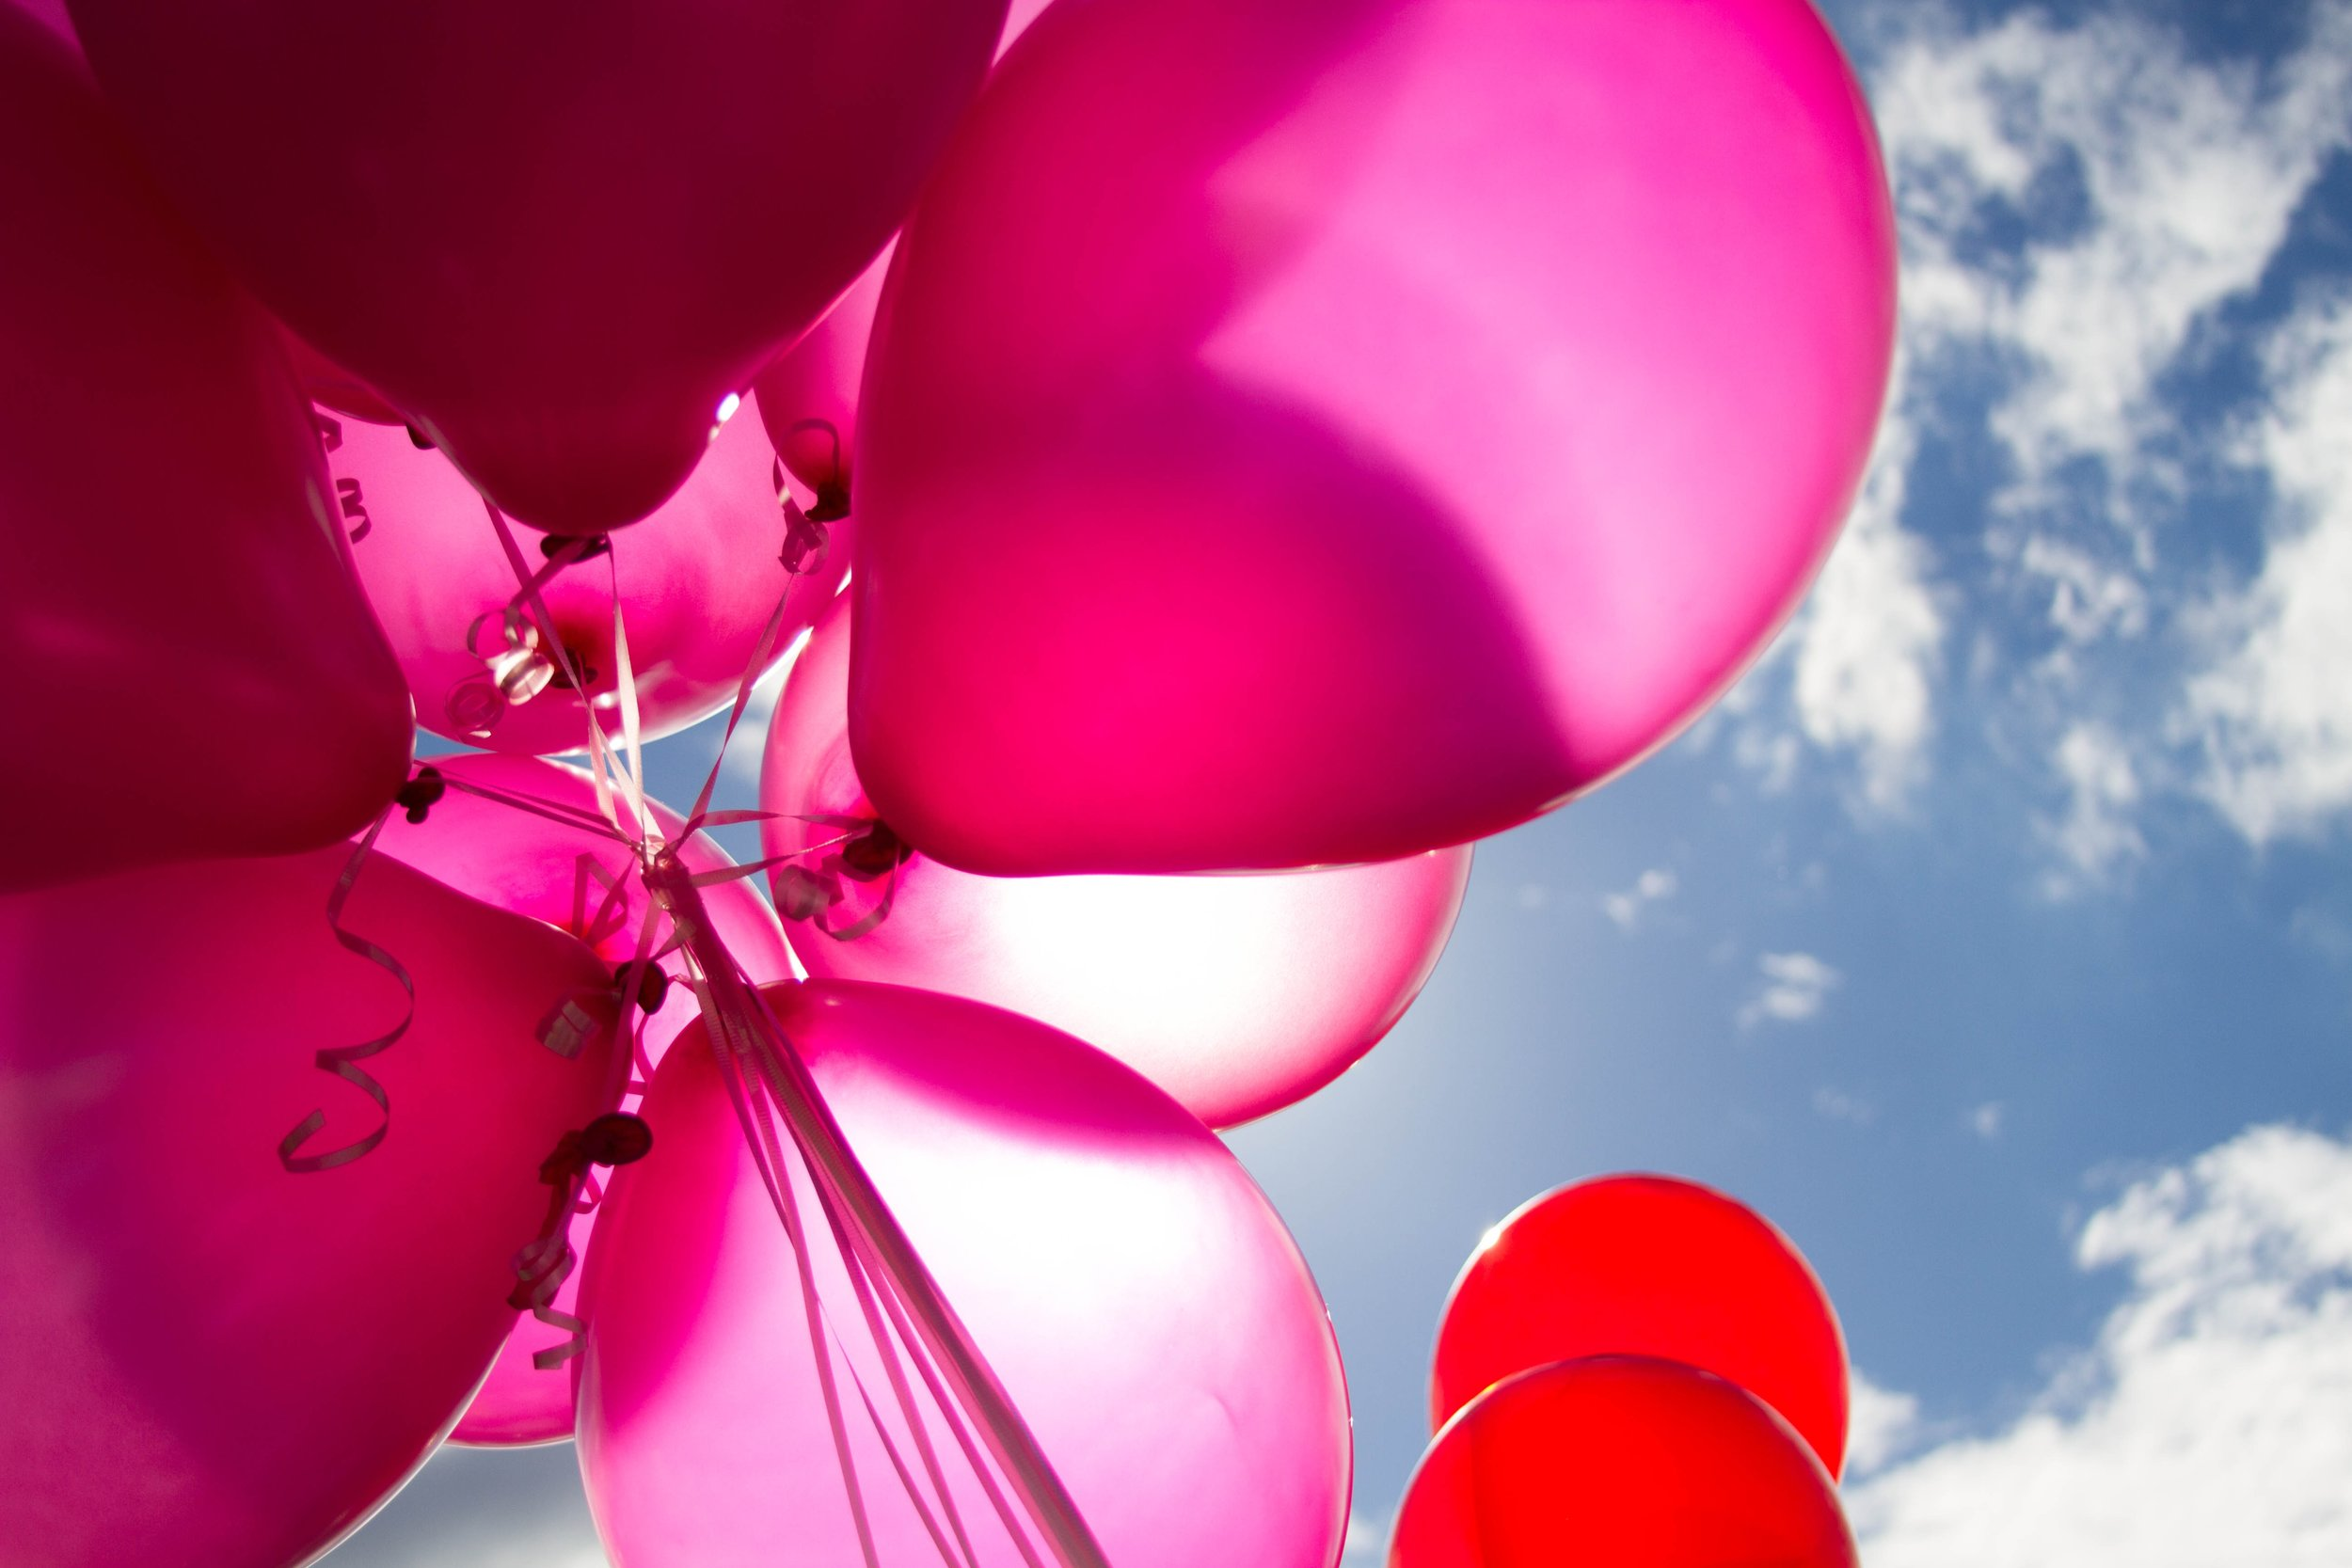 balloons-birthday-bright-226718.jpg